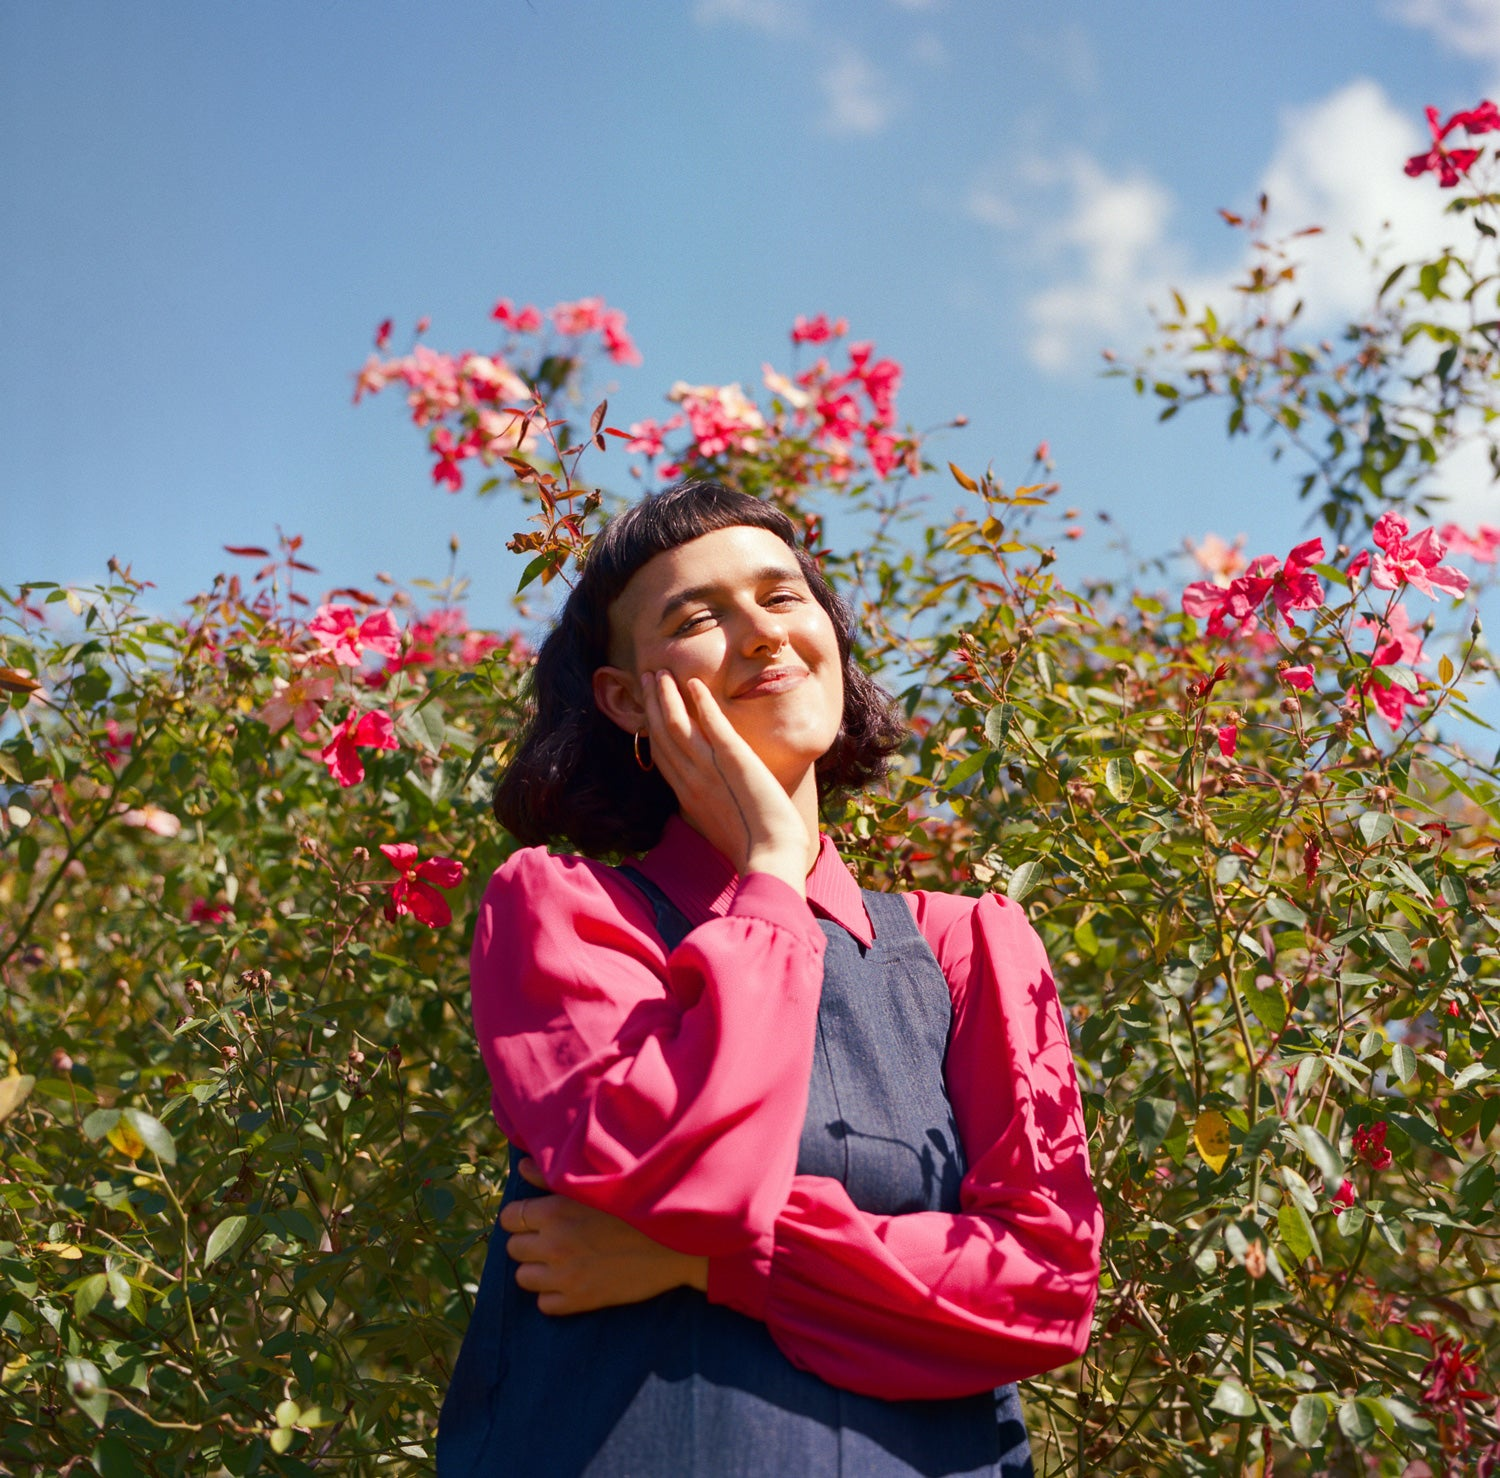 Film portrait of Christine. She is standing in front of a pink flowering bush, with her hand to the side of her face in a warm moment.